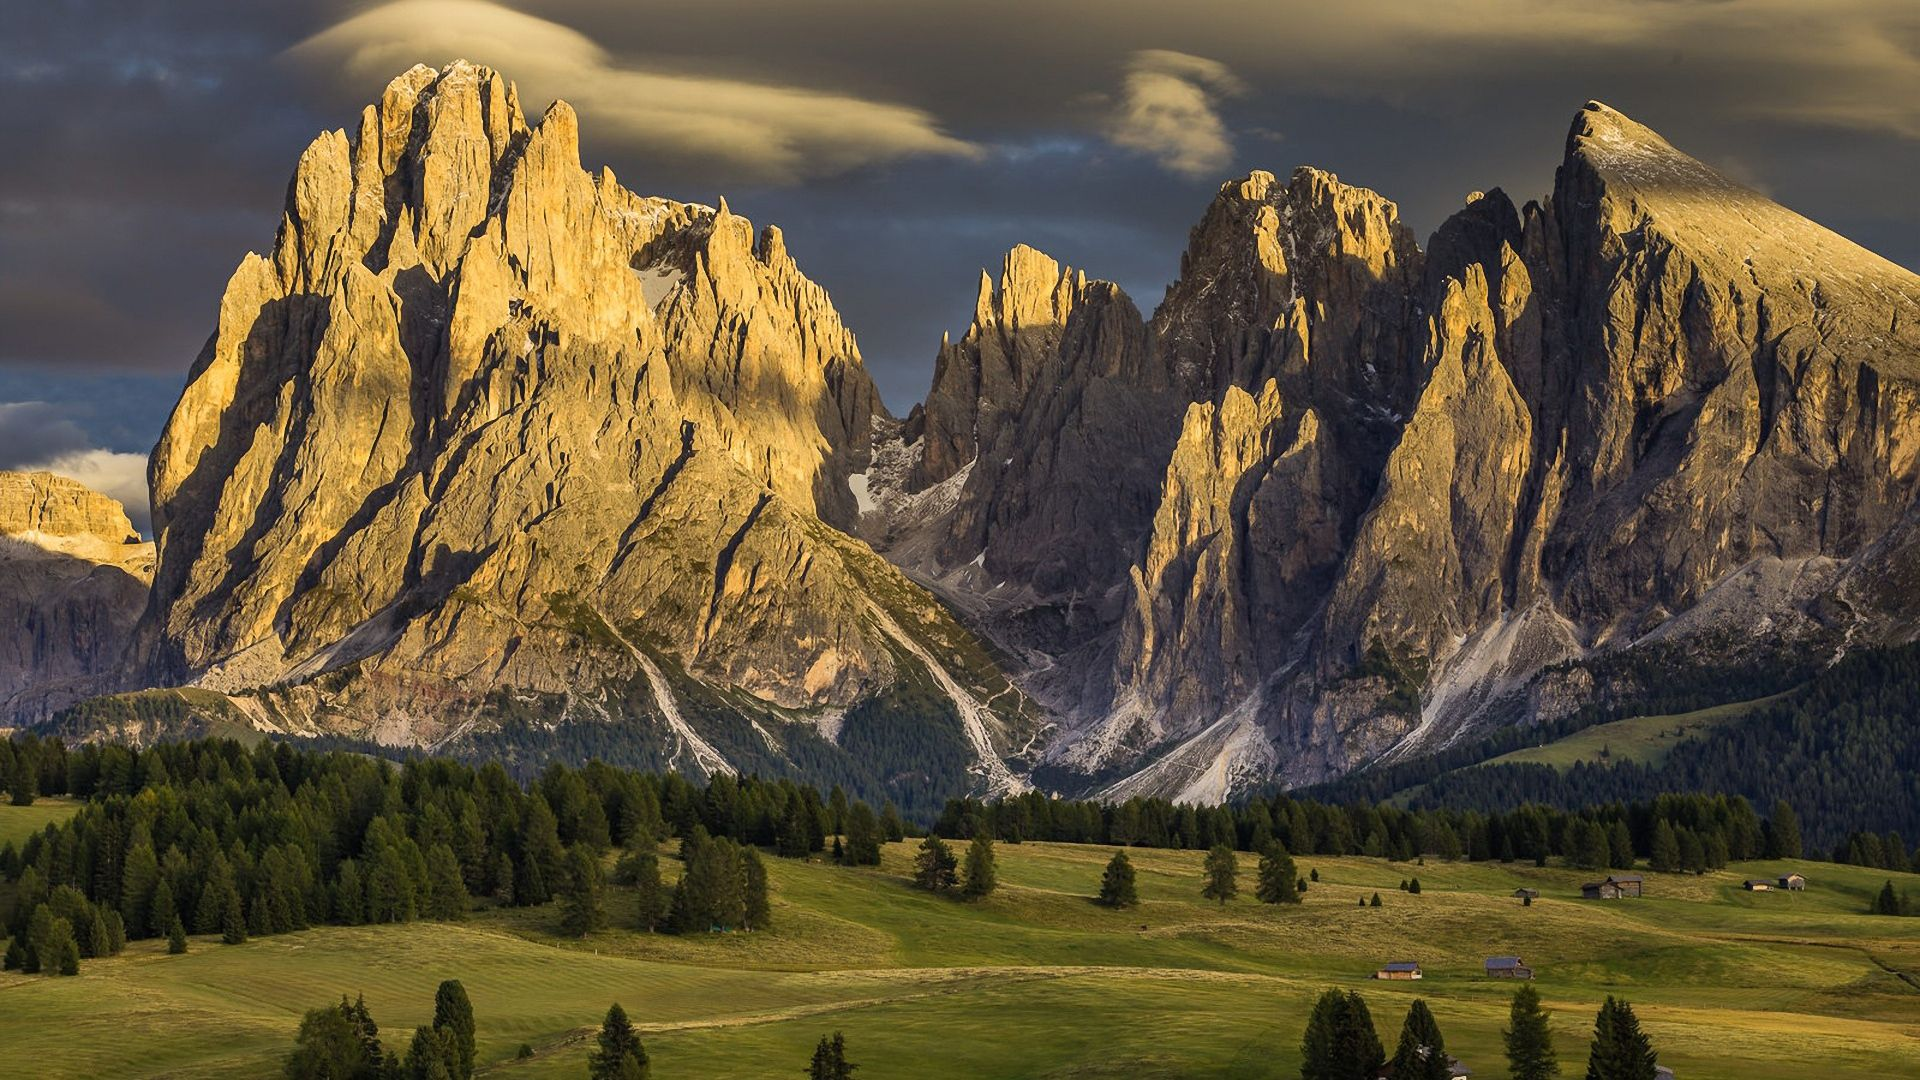 Download Wallpaper Alpe di siusi Italy Nature Mountains